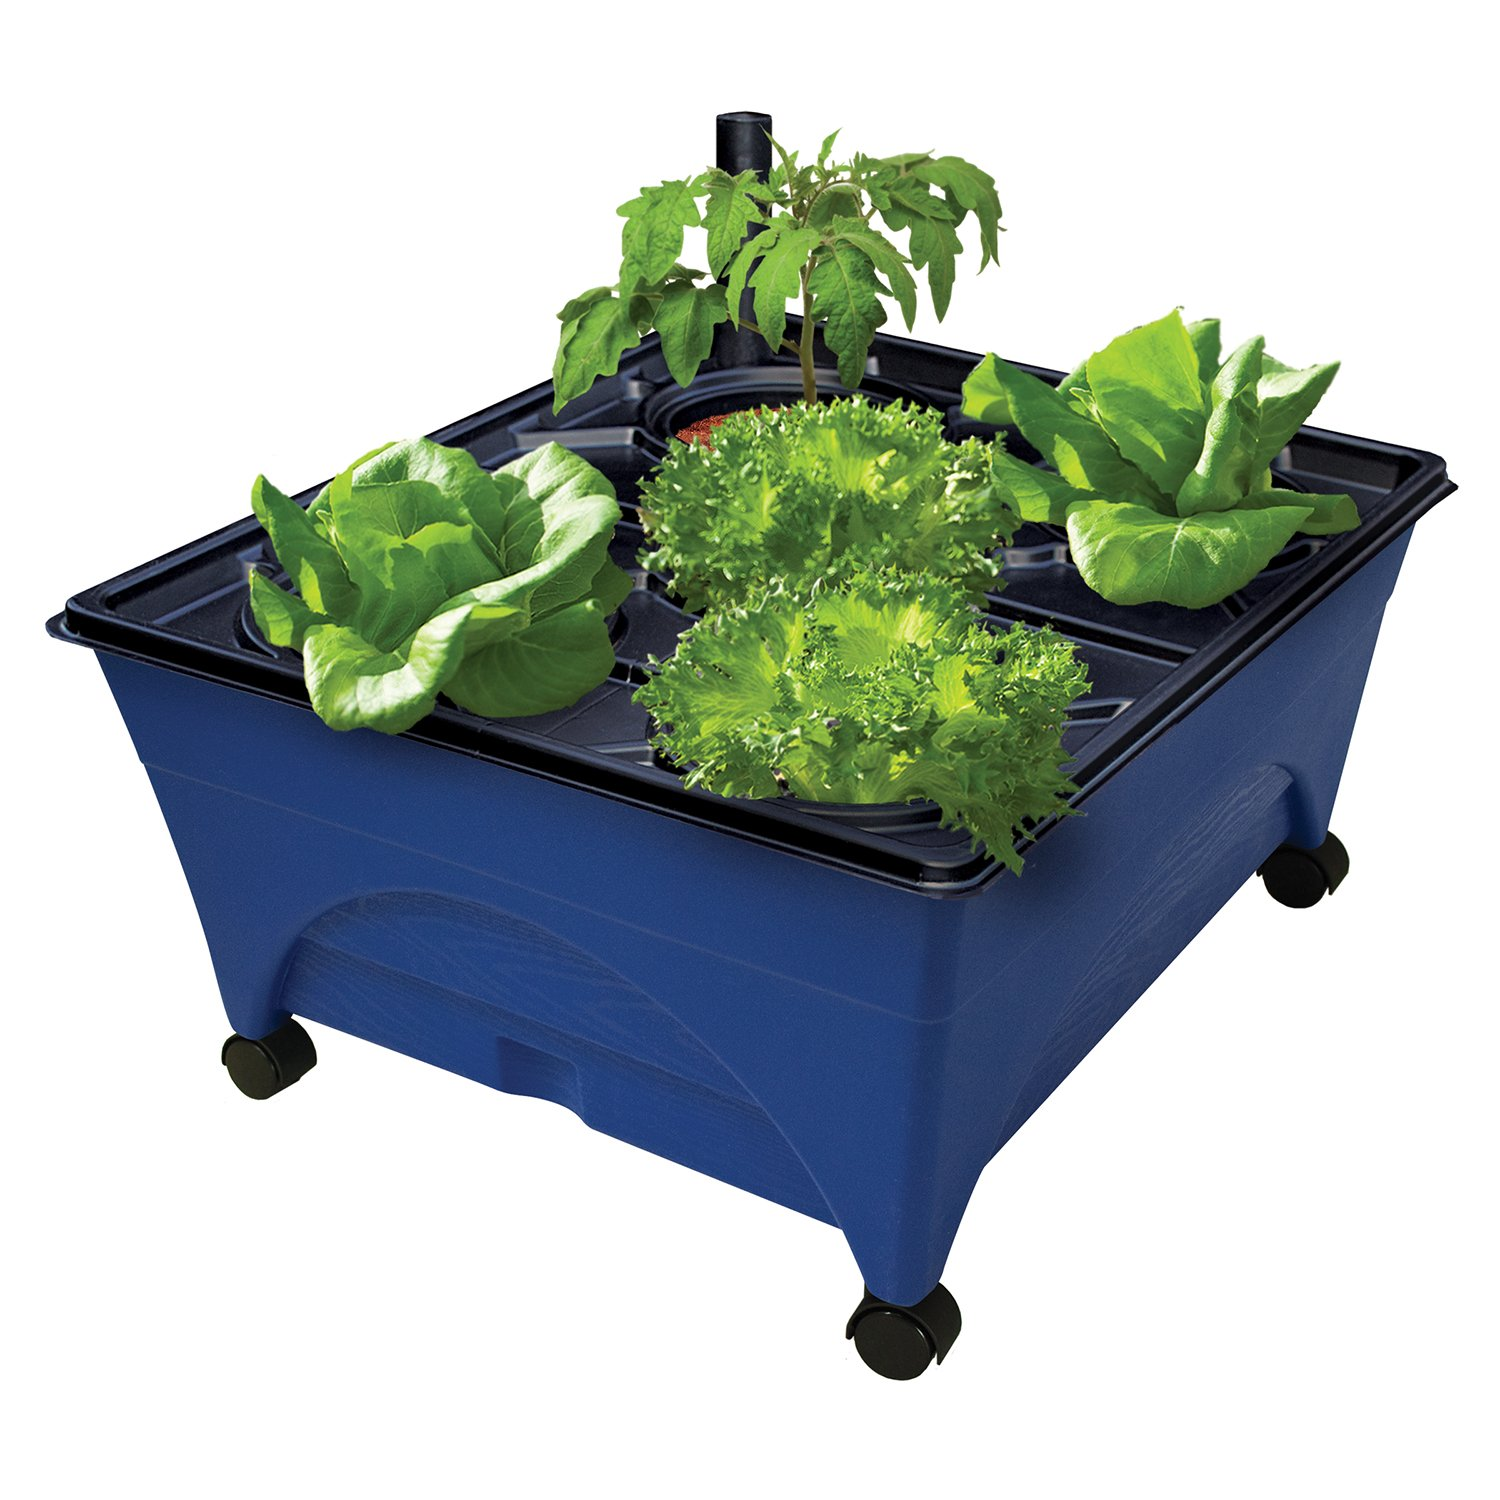 "Emsco Group 2370 Hydropickers Compact 24"" x 20"" Footprint – Mobility Provided by Casters Non-Electric Hydroponics Grow Box, Blue"